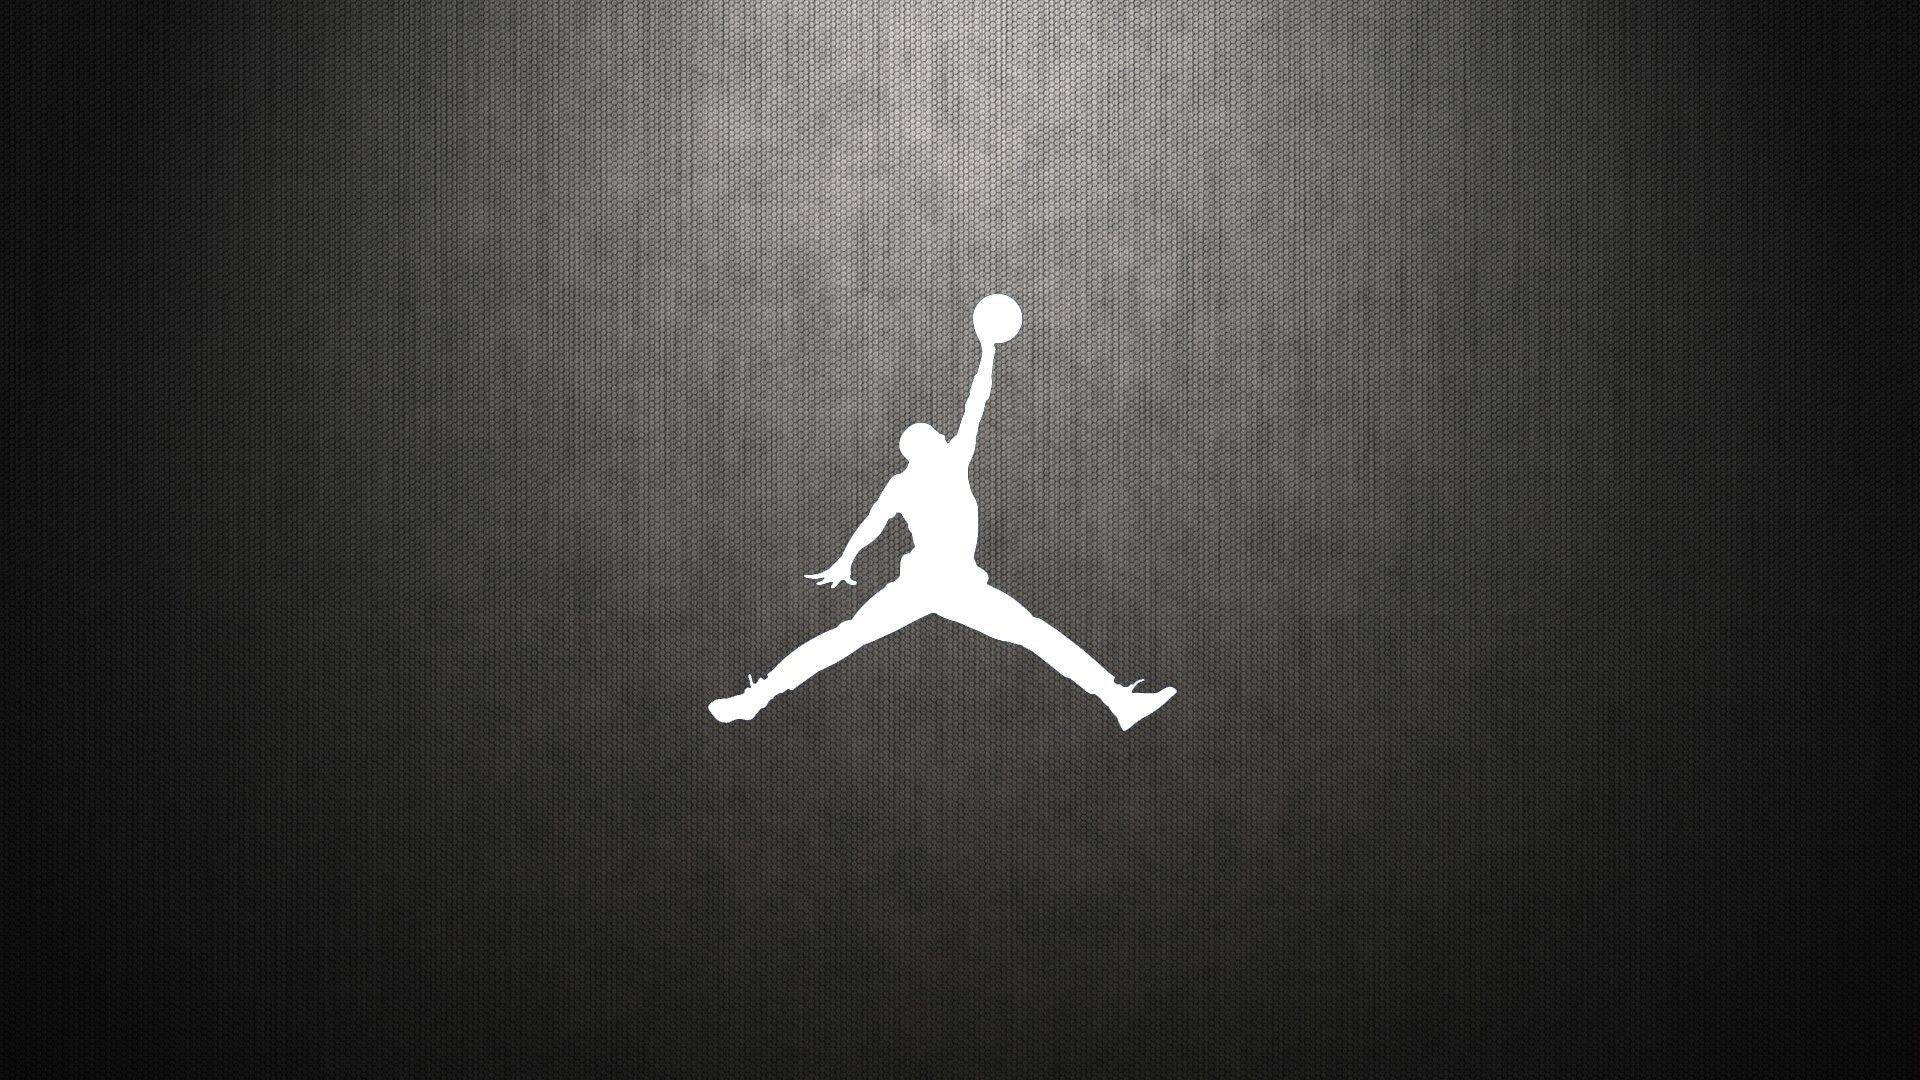 Good Wallpaper Logo Nike - 3a1b18b86422c4416d9a7b0ce689f61b  Trends_51875.jpg